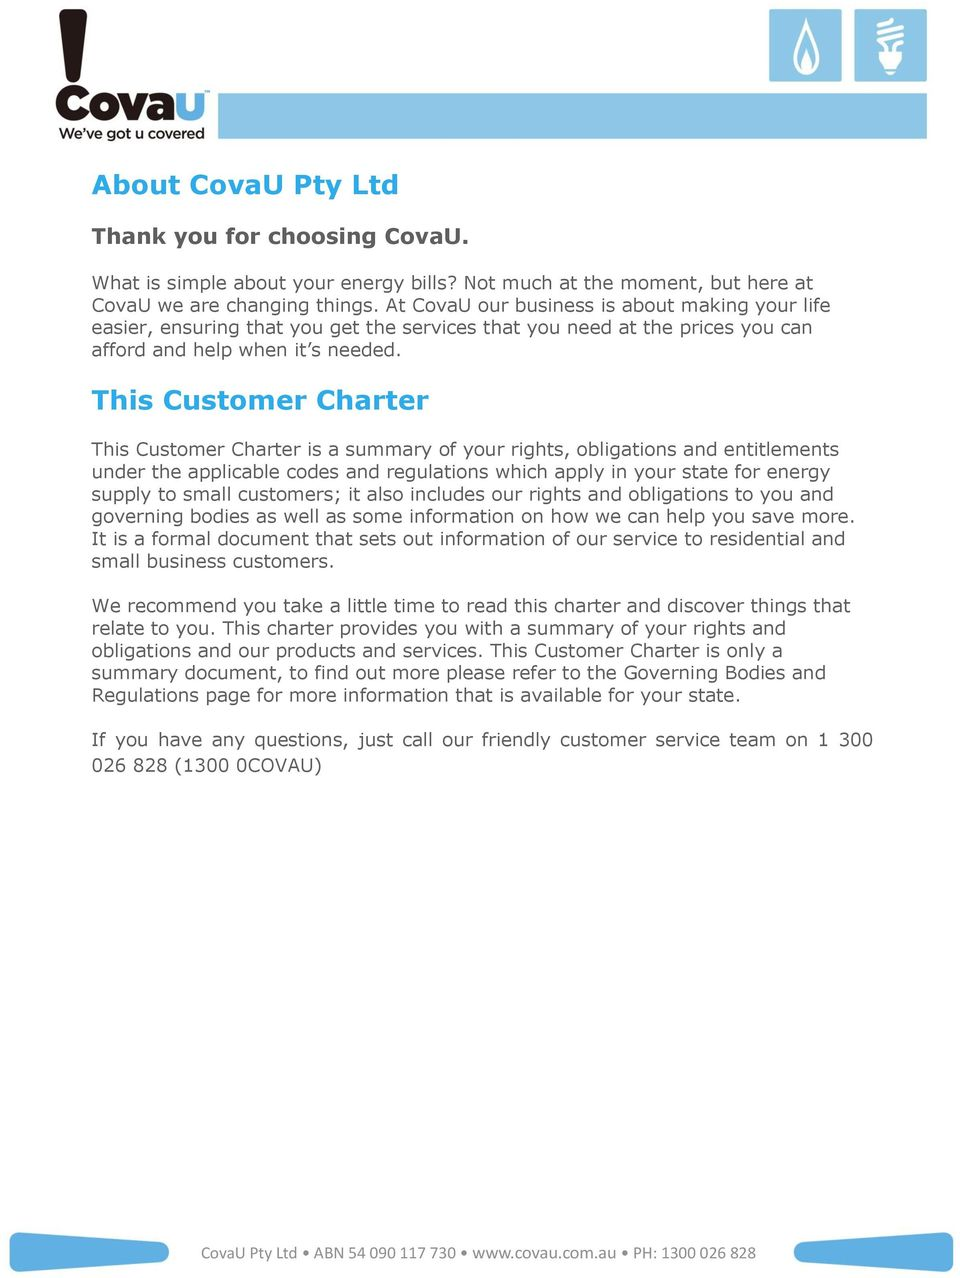 about covau pty ltd. this customer charter. thank you for choosing